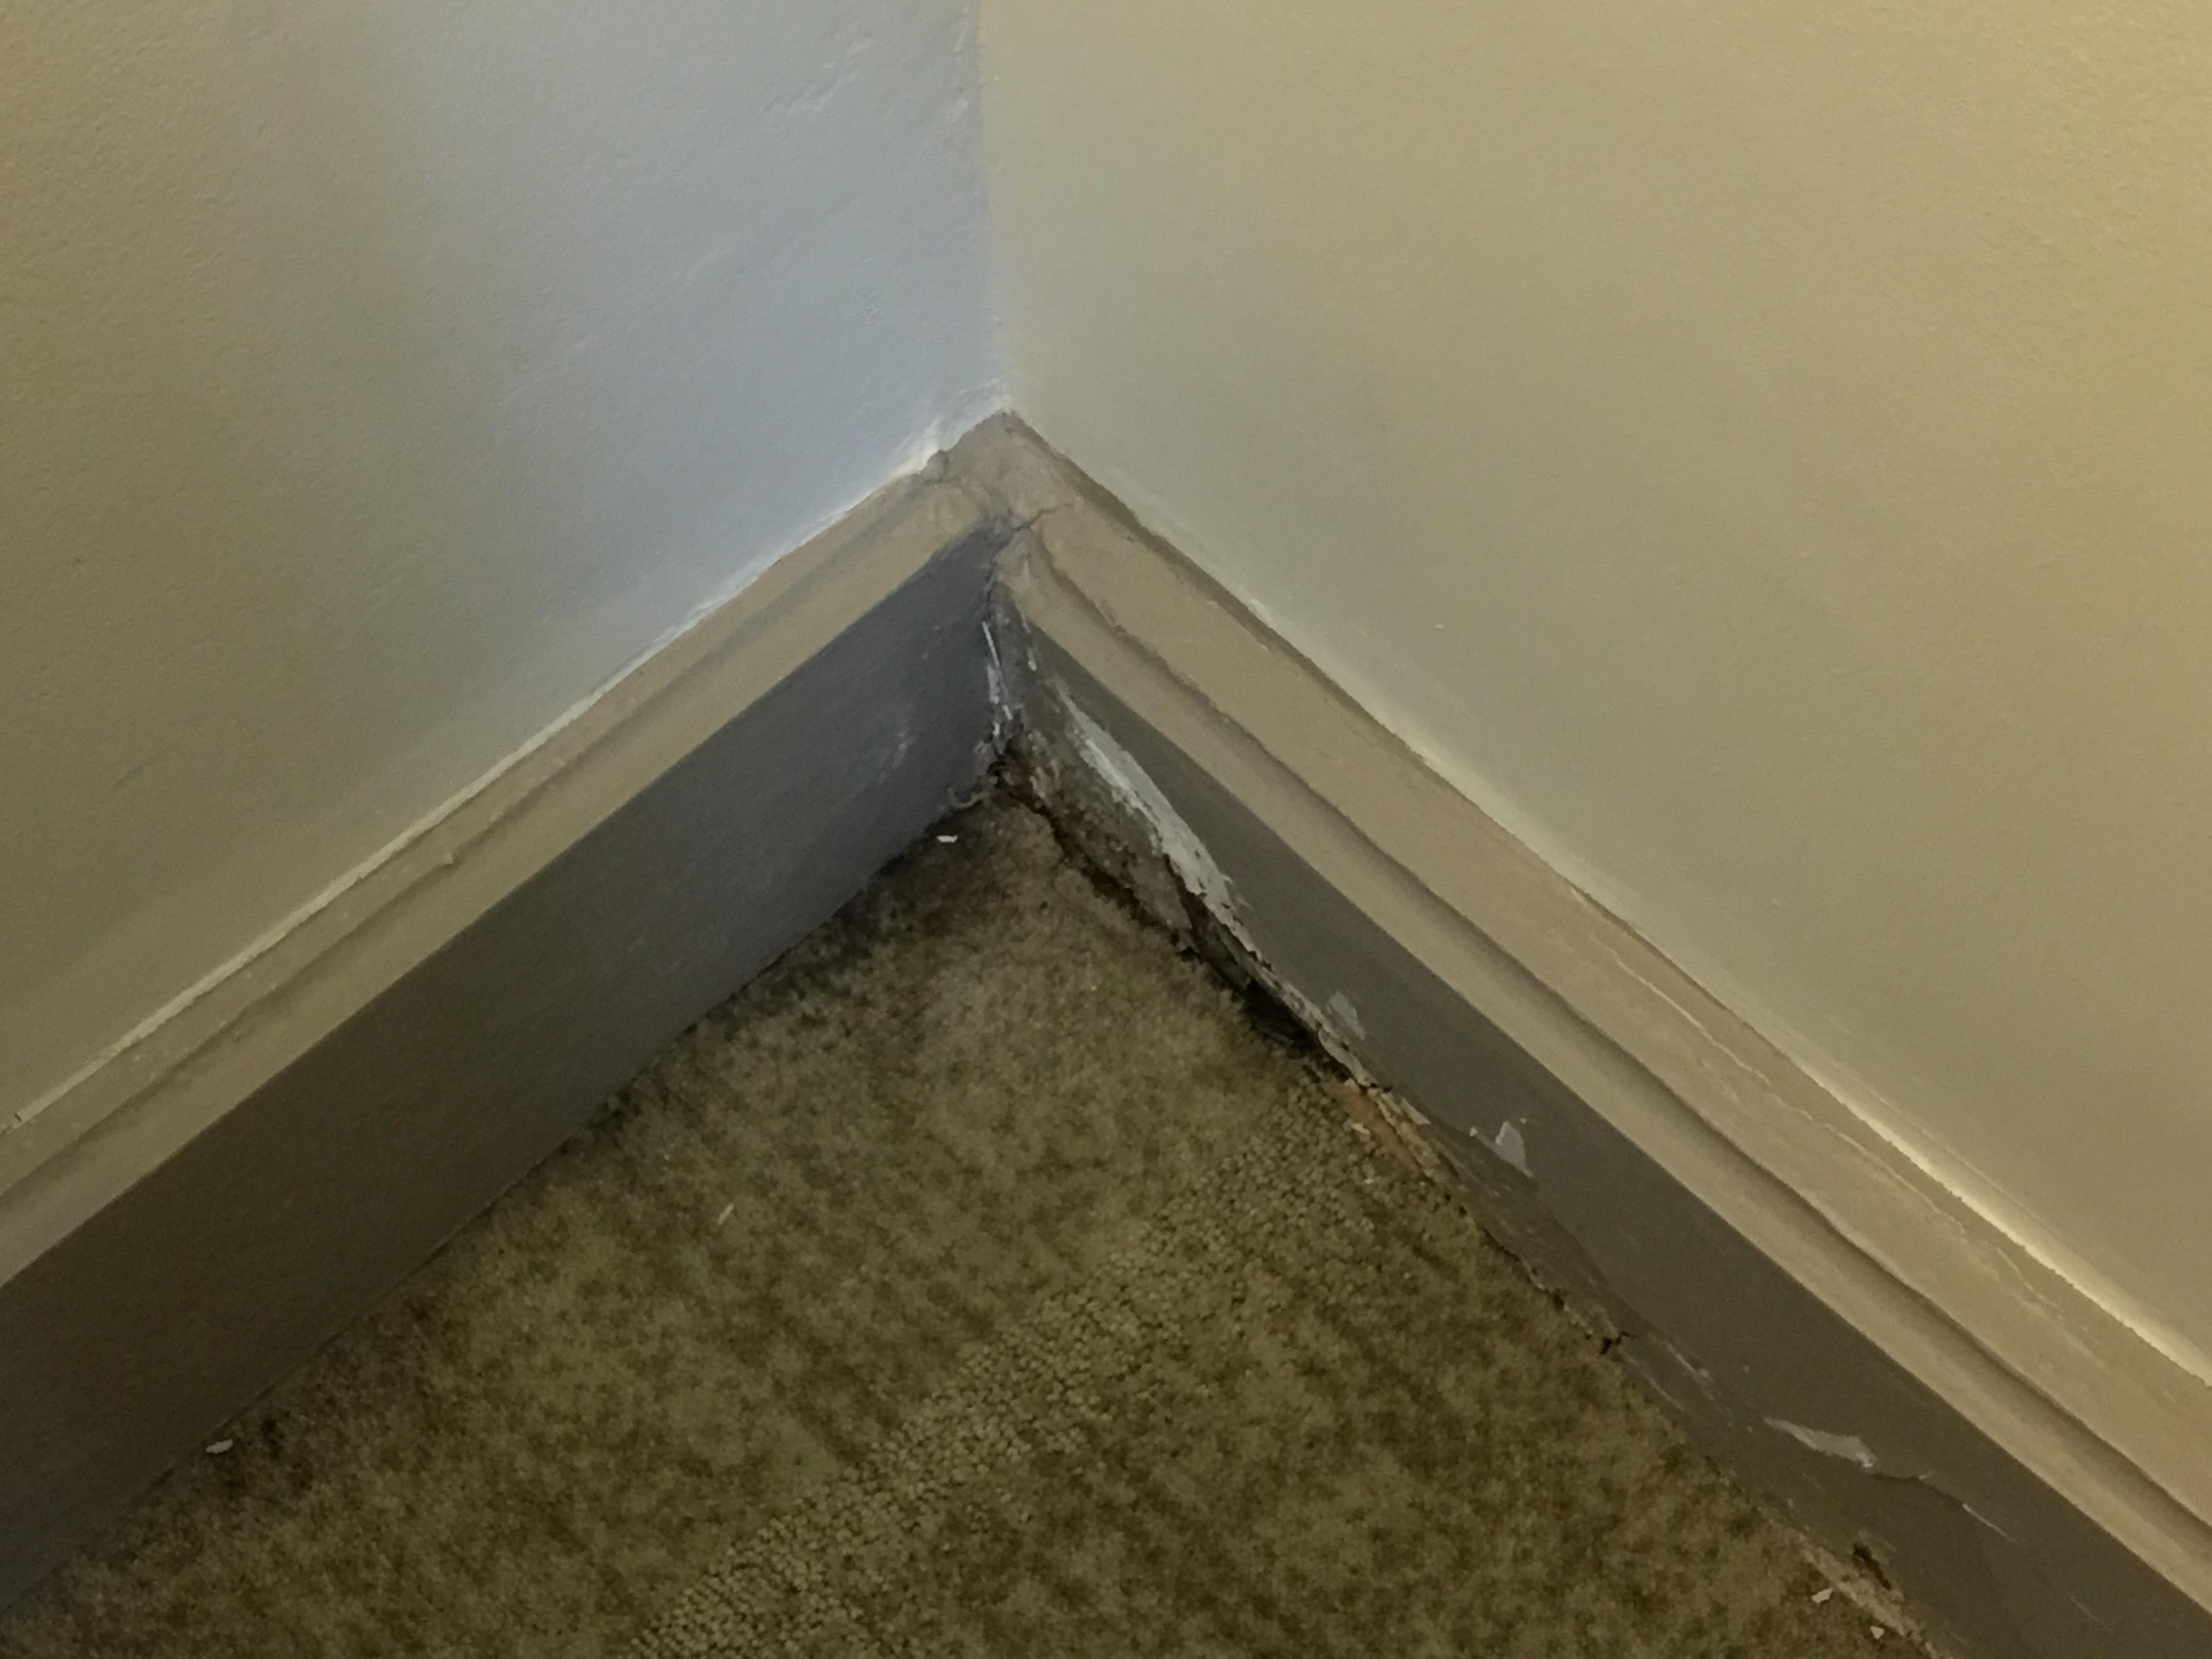 Lots of damage and mold